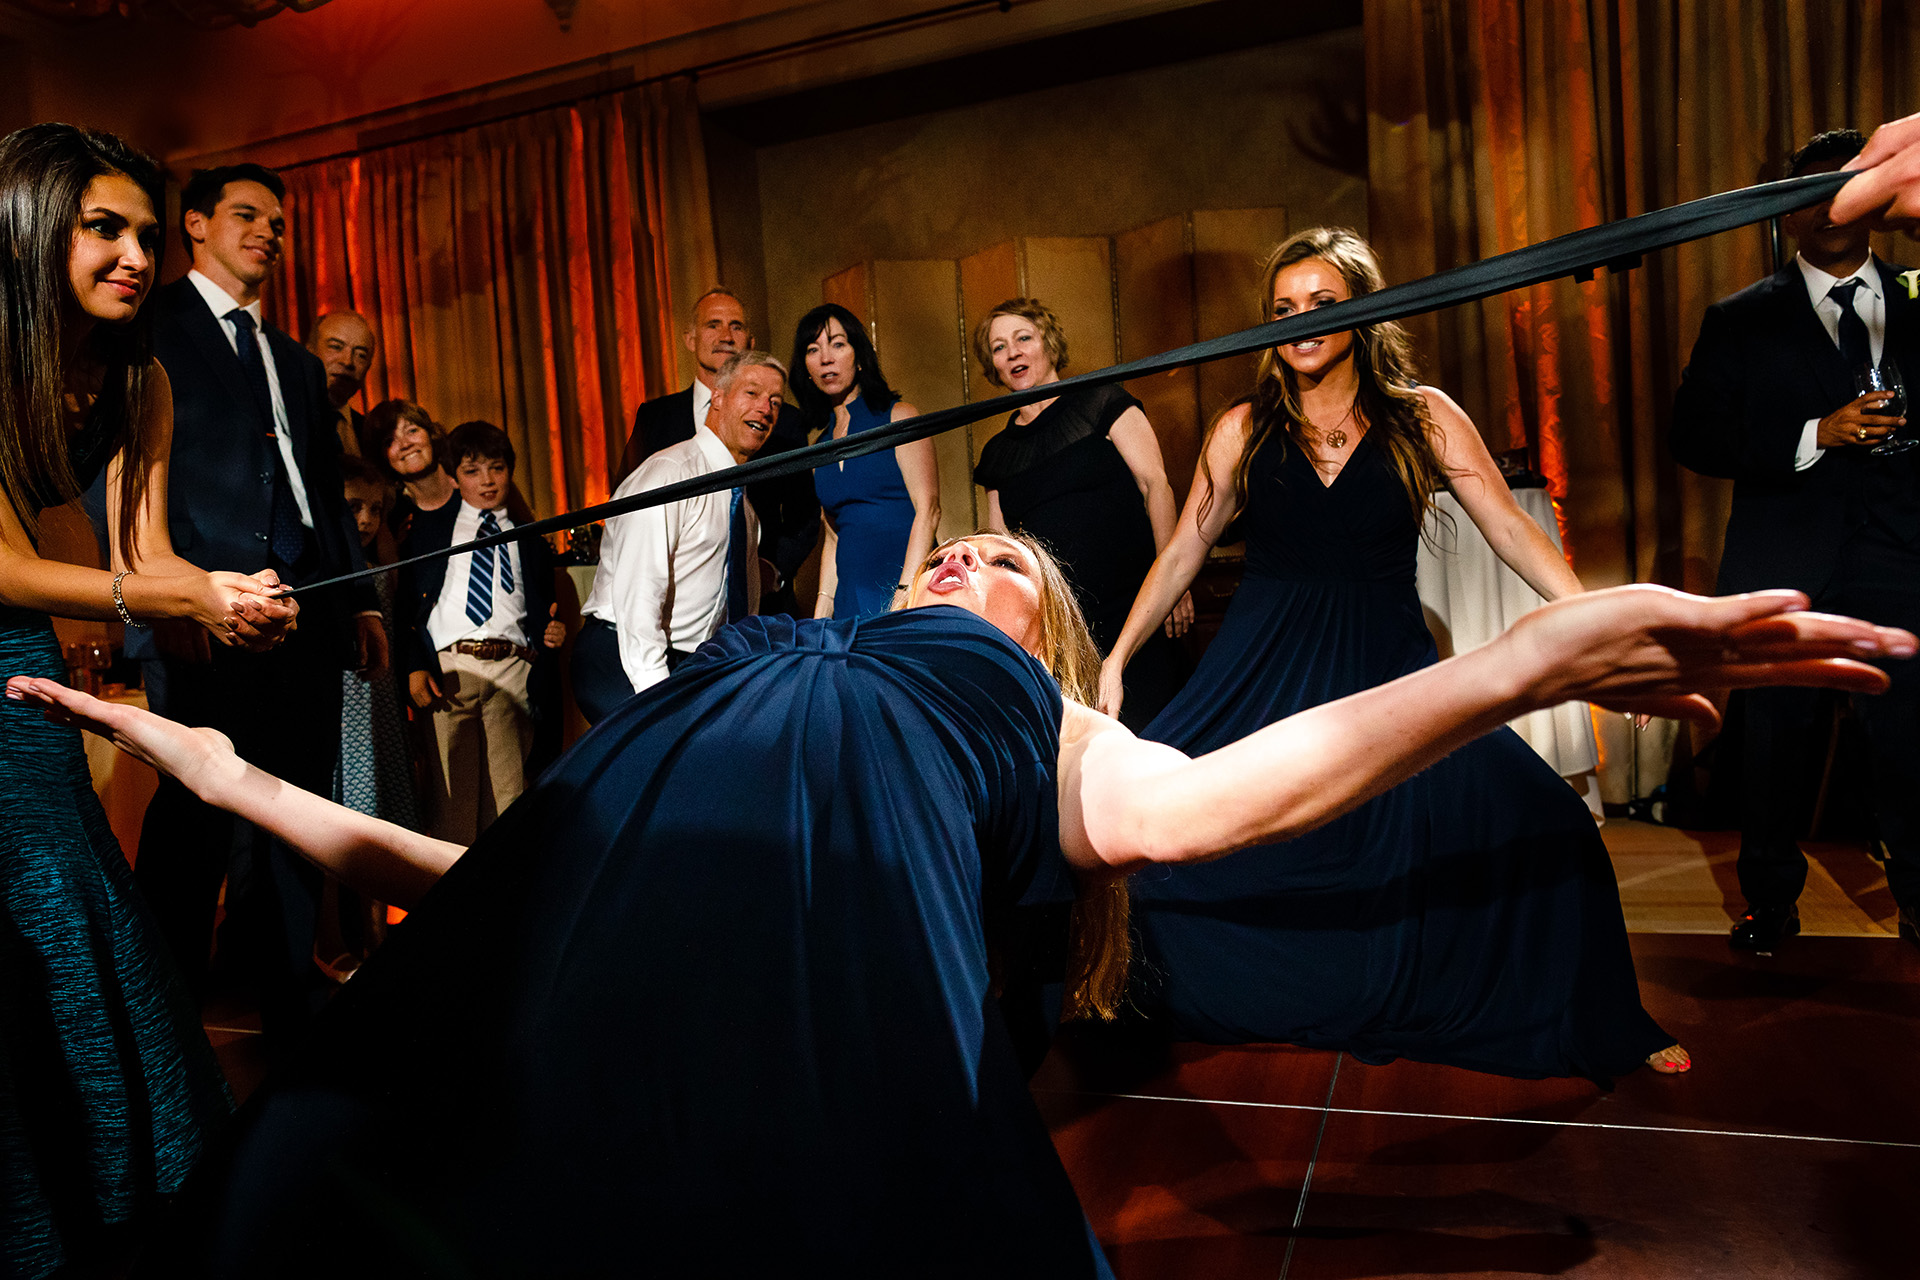 wedding photojournalist captured woman doing limbo at the reception party